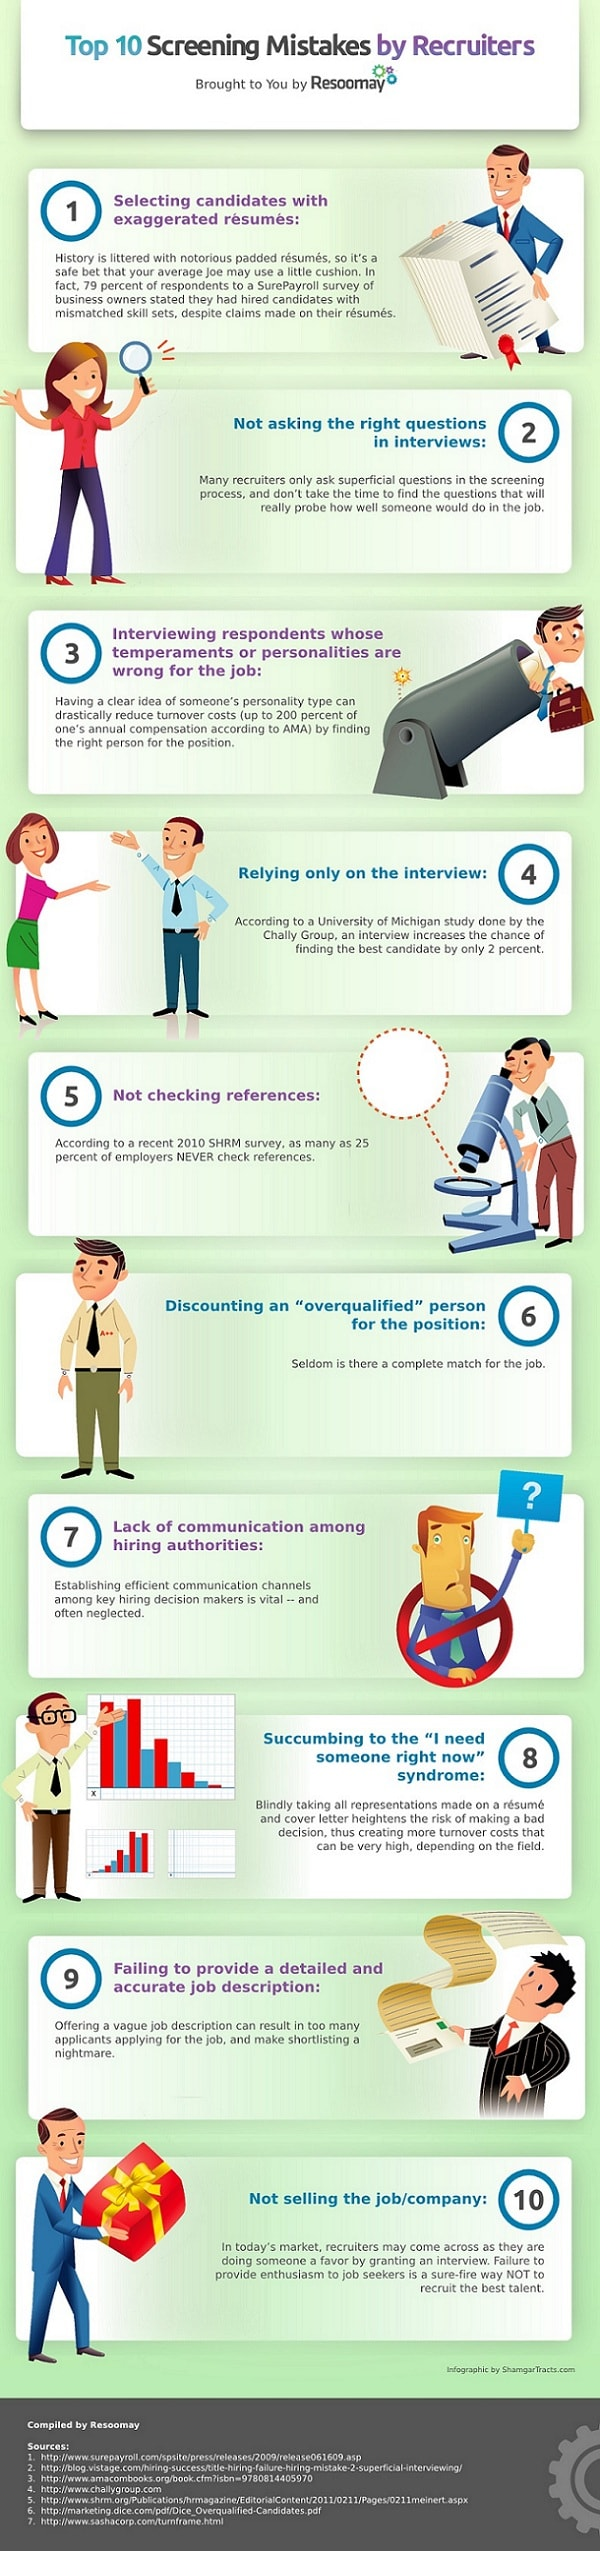 Screening Mistakes for Recruiters Infographic